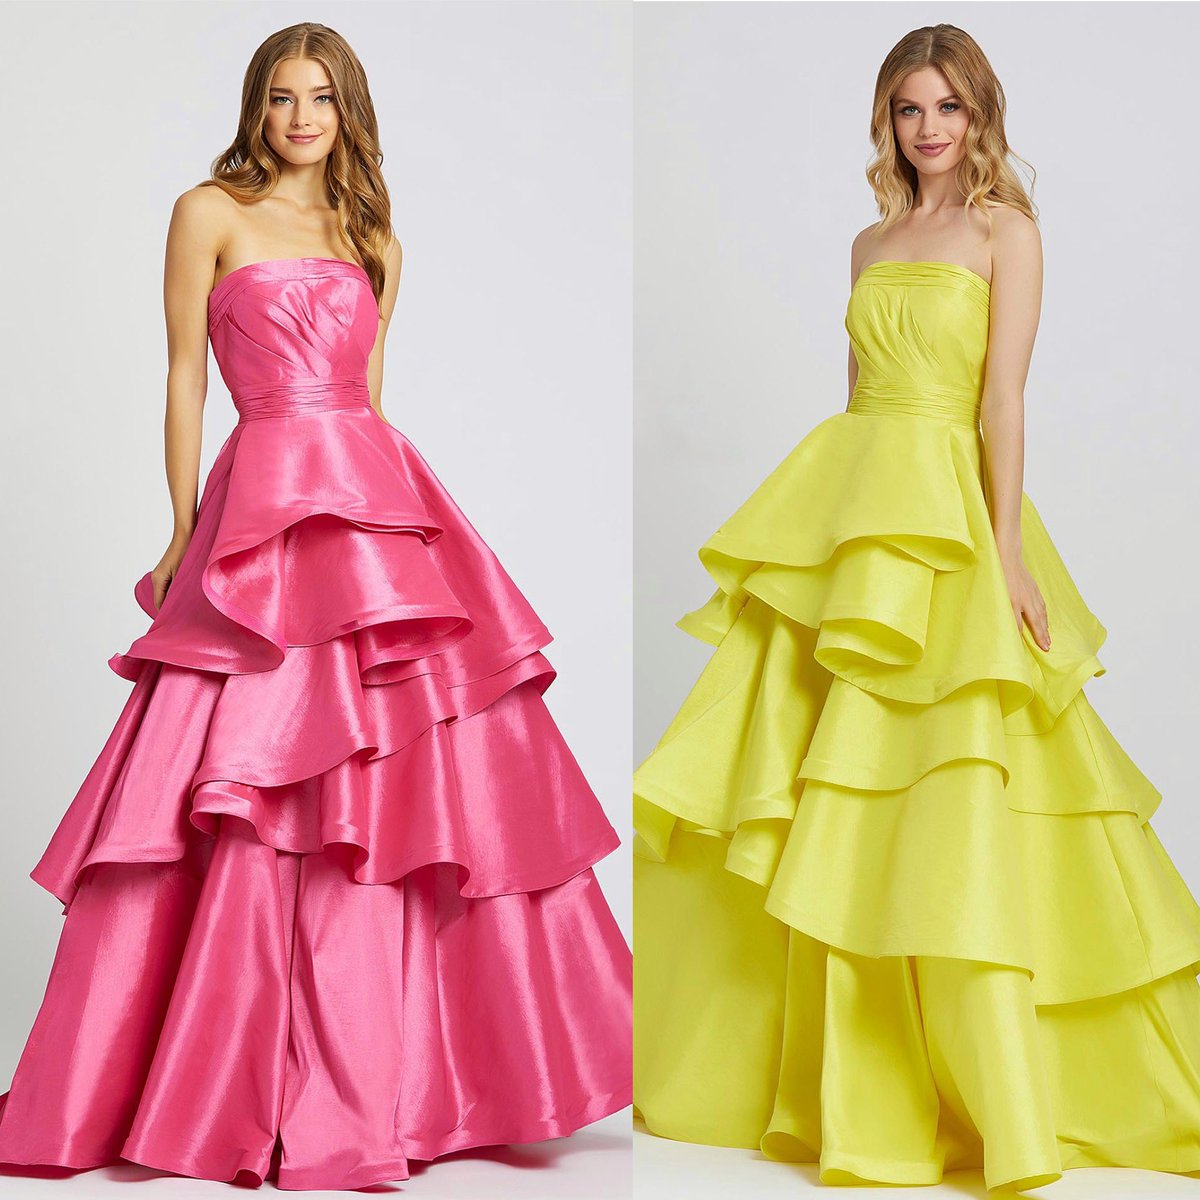 Pink or Yellow? {48884h} . . . .  #onlineshopping #onlineboutique #macduggal #ballgown  #gown #pink #yellow  #manhattan #elegance #new #prom #pretty #promseason #details #formal #new #love #spring #designer #dresses #dramatic #event #newyork #manhattandress